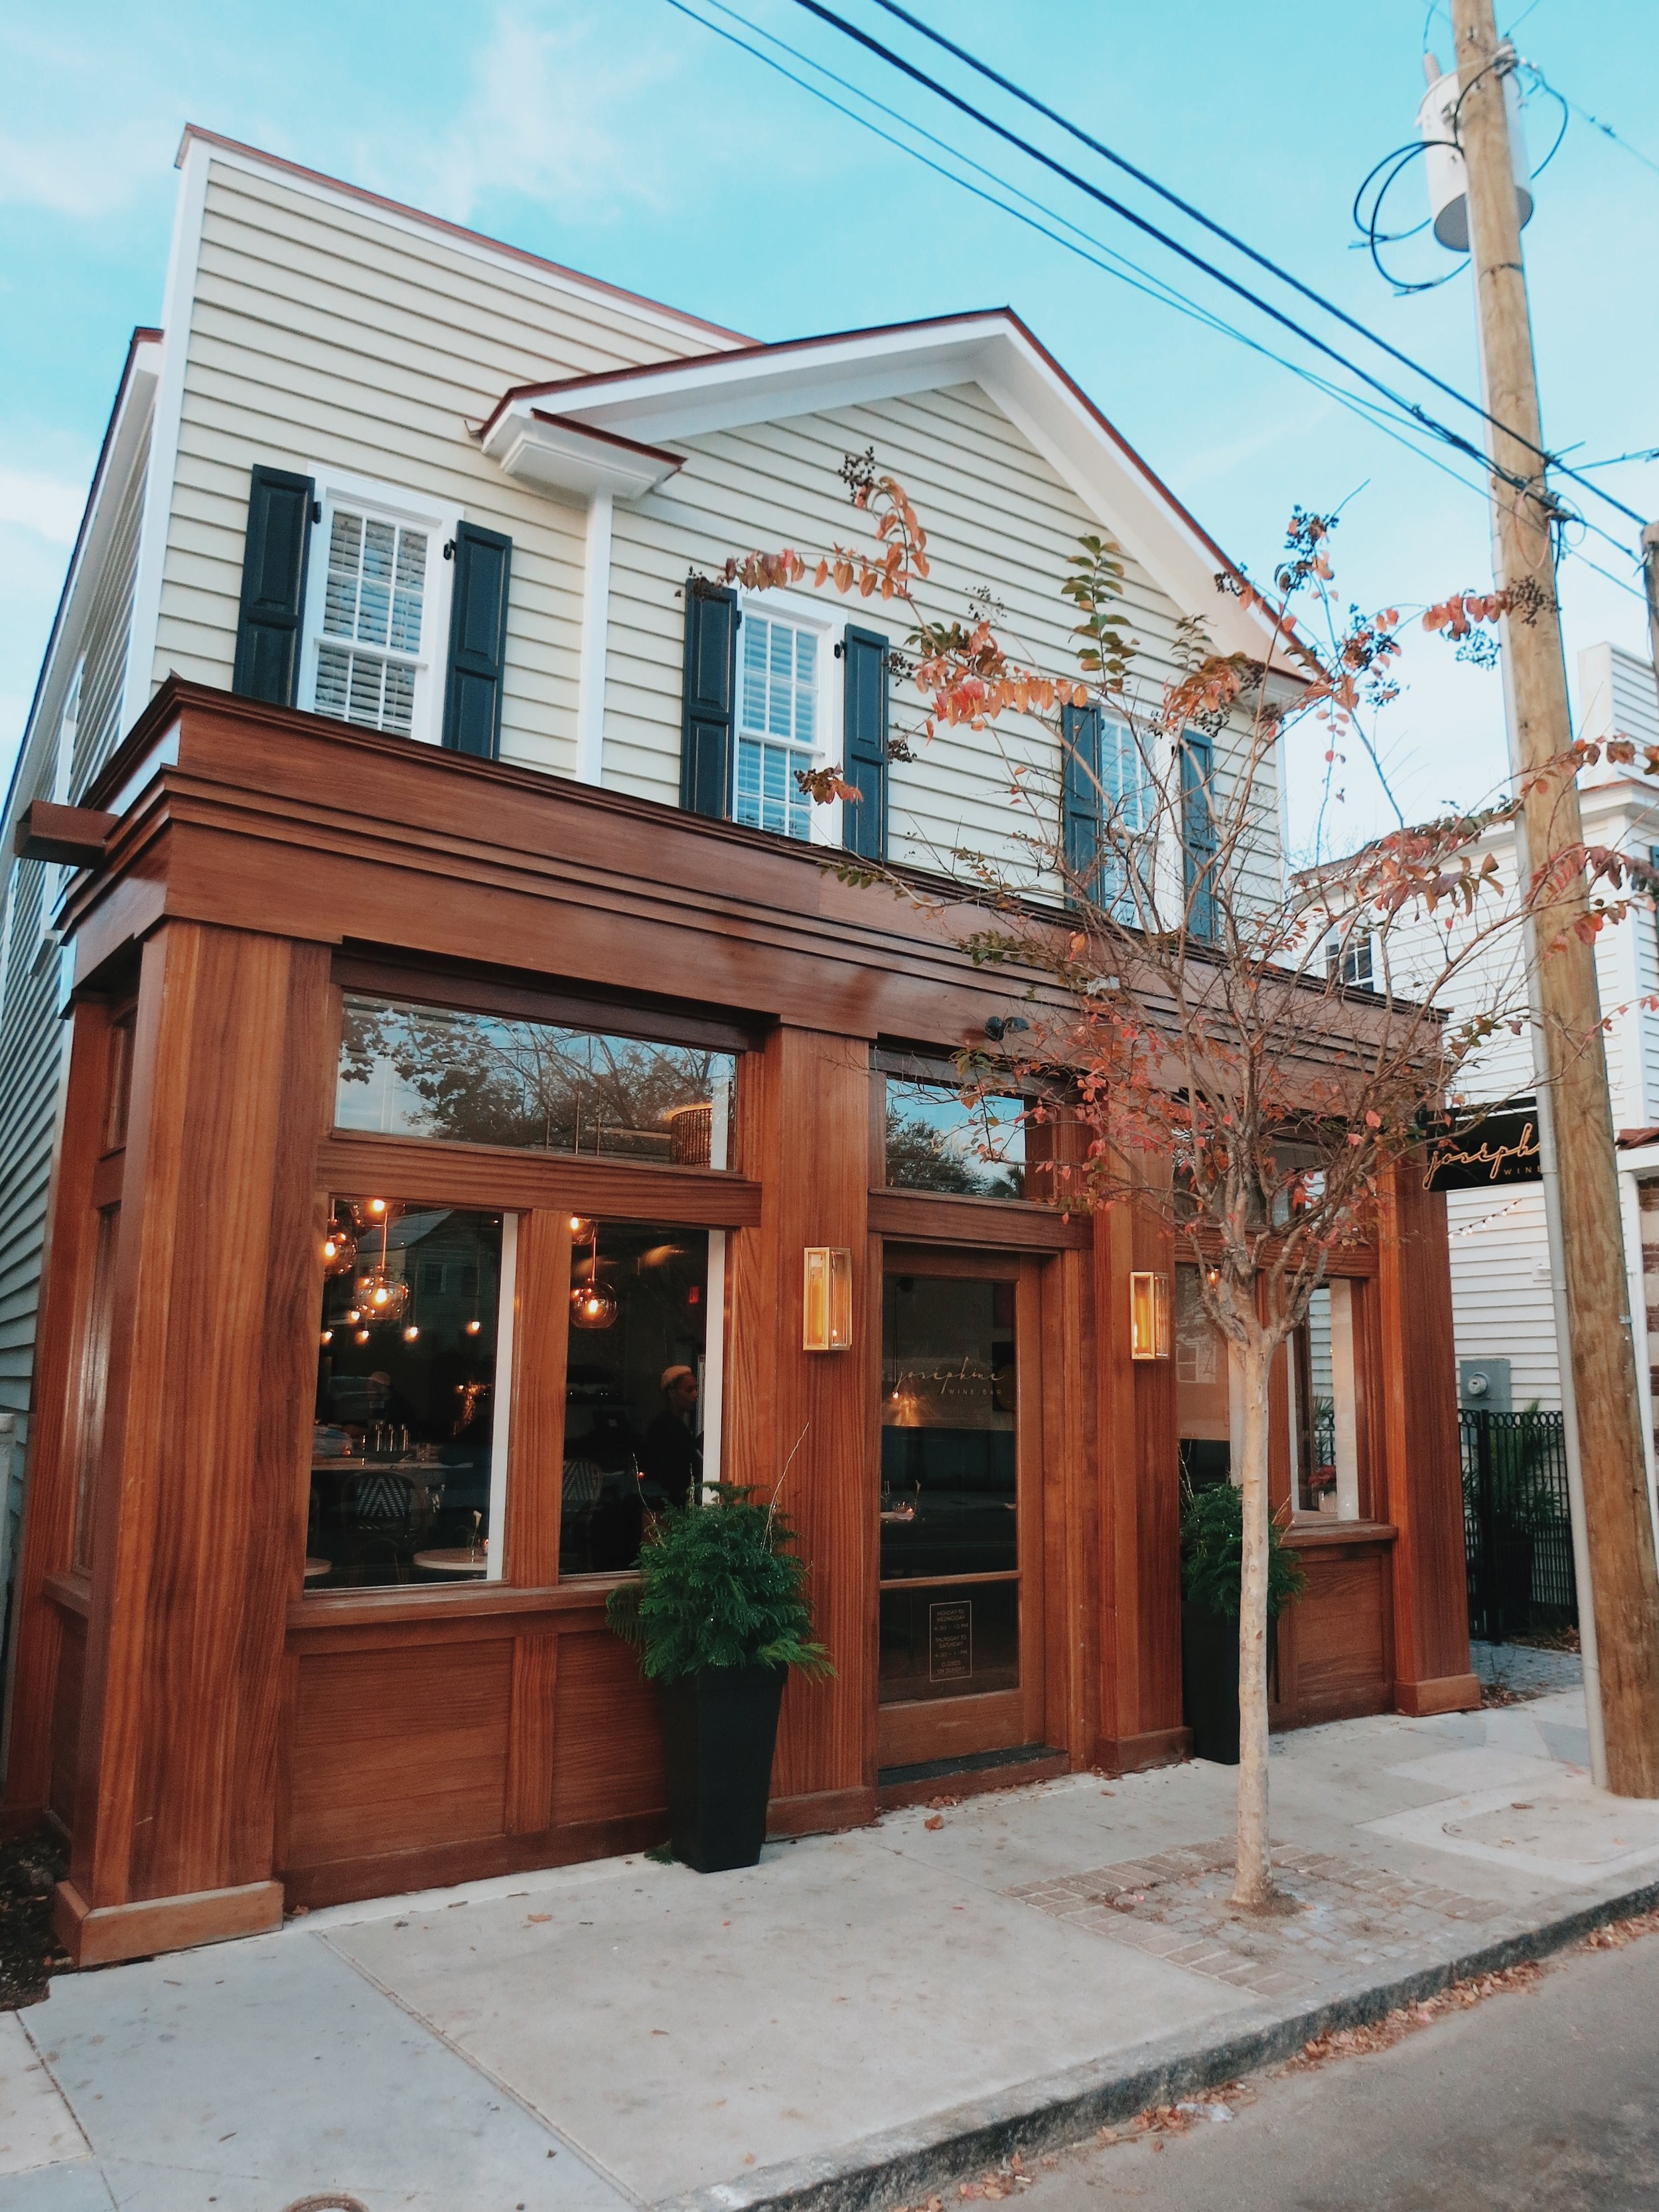 I Love That For You - Josephine Wine Bar Building.jpg